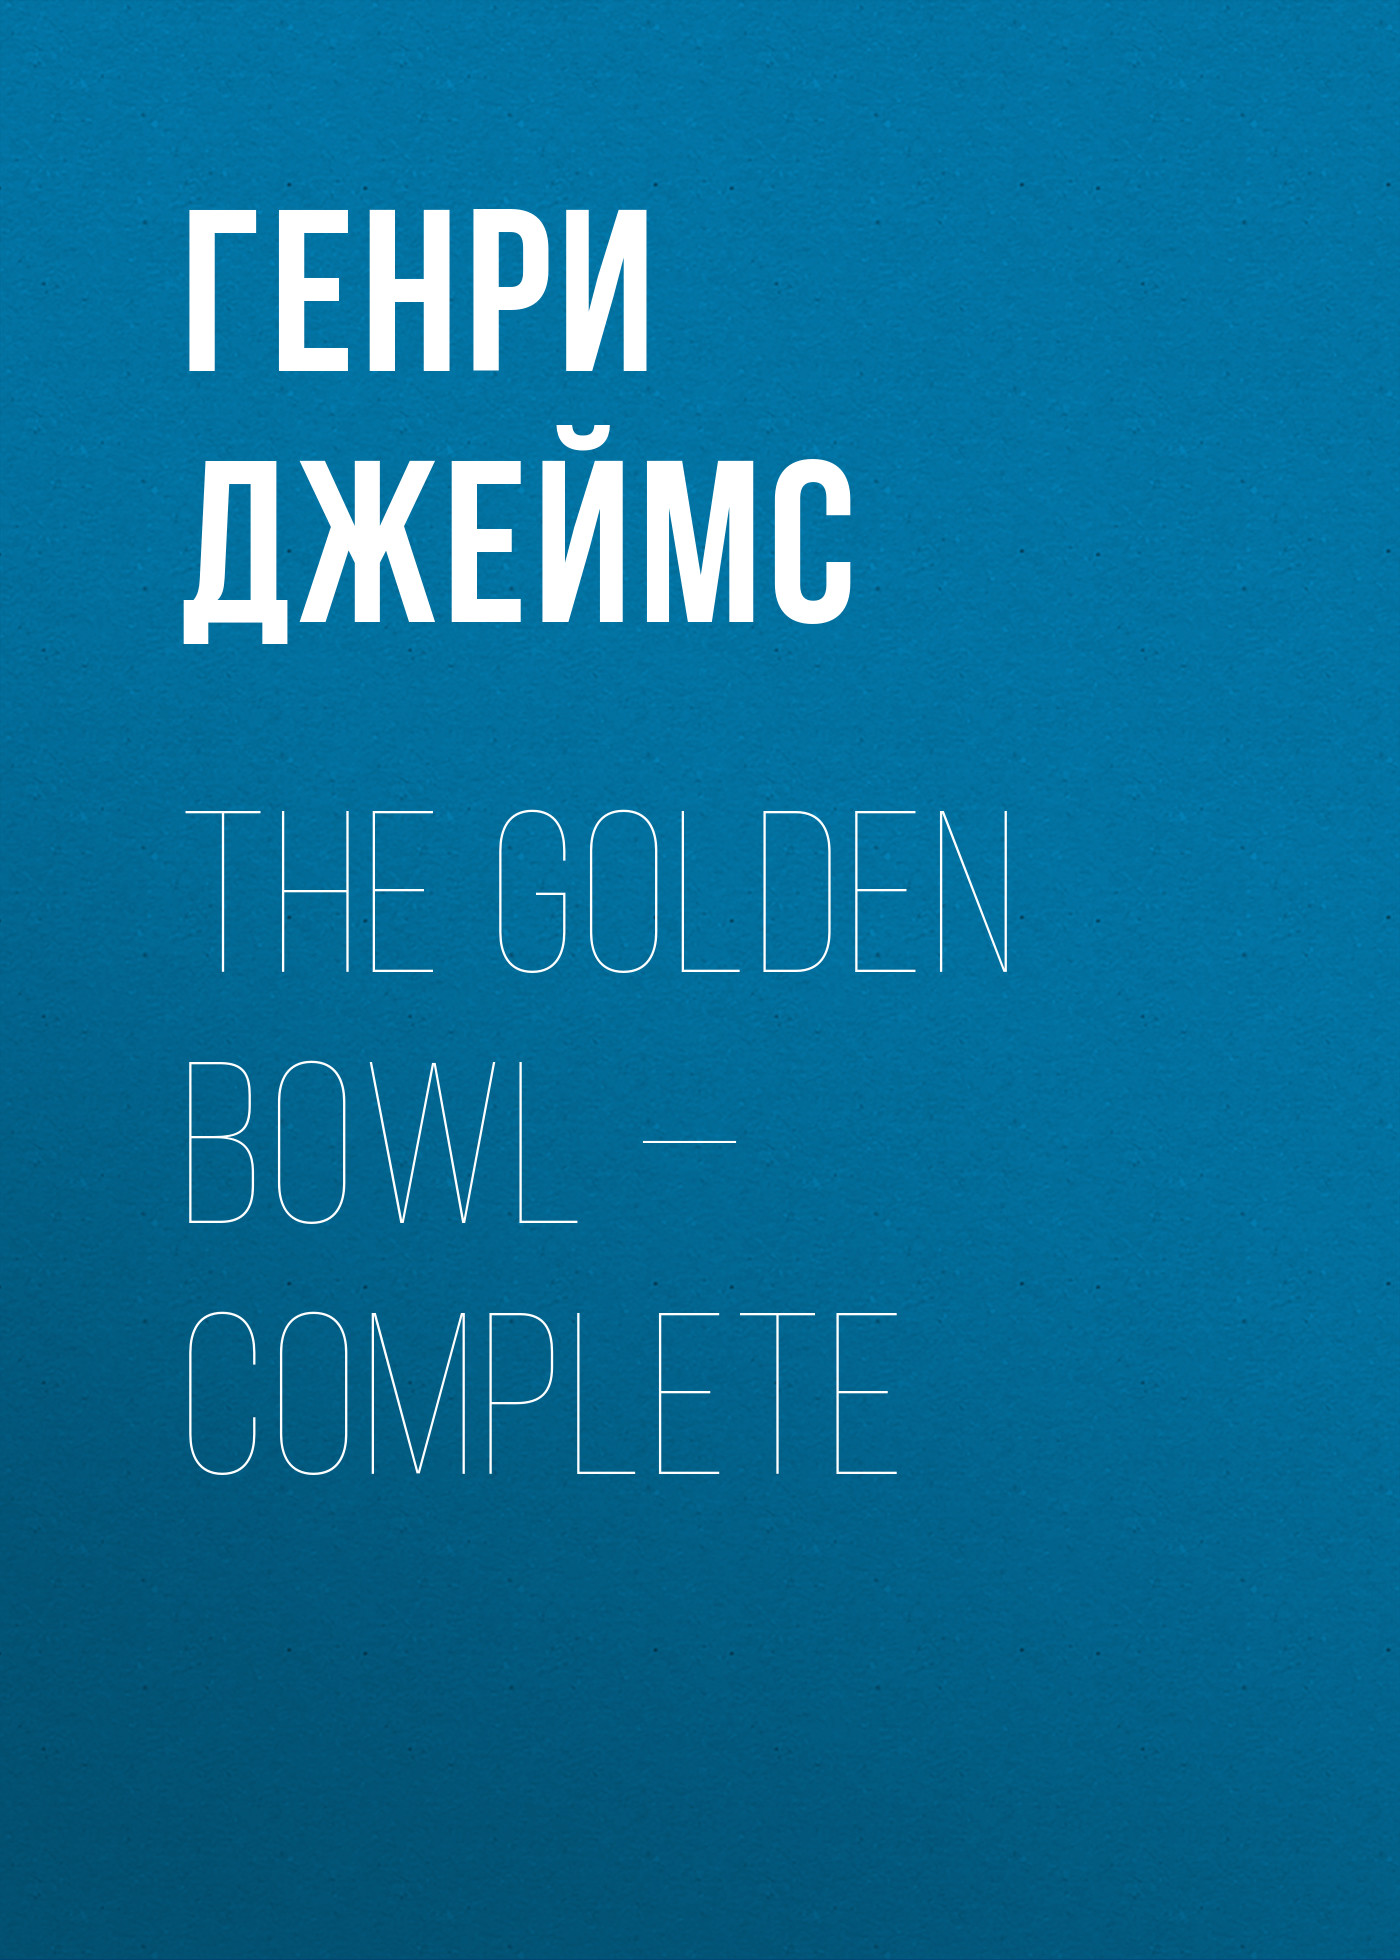 Генри Джеймс The Golden Bowl — Complete цена